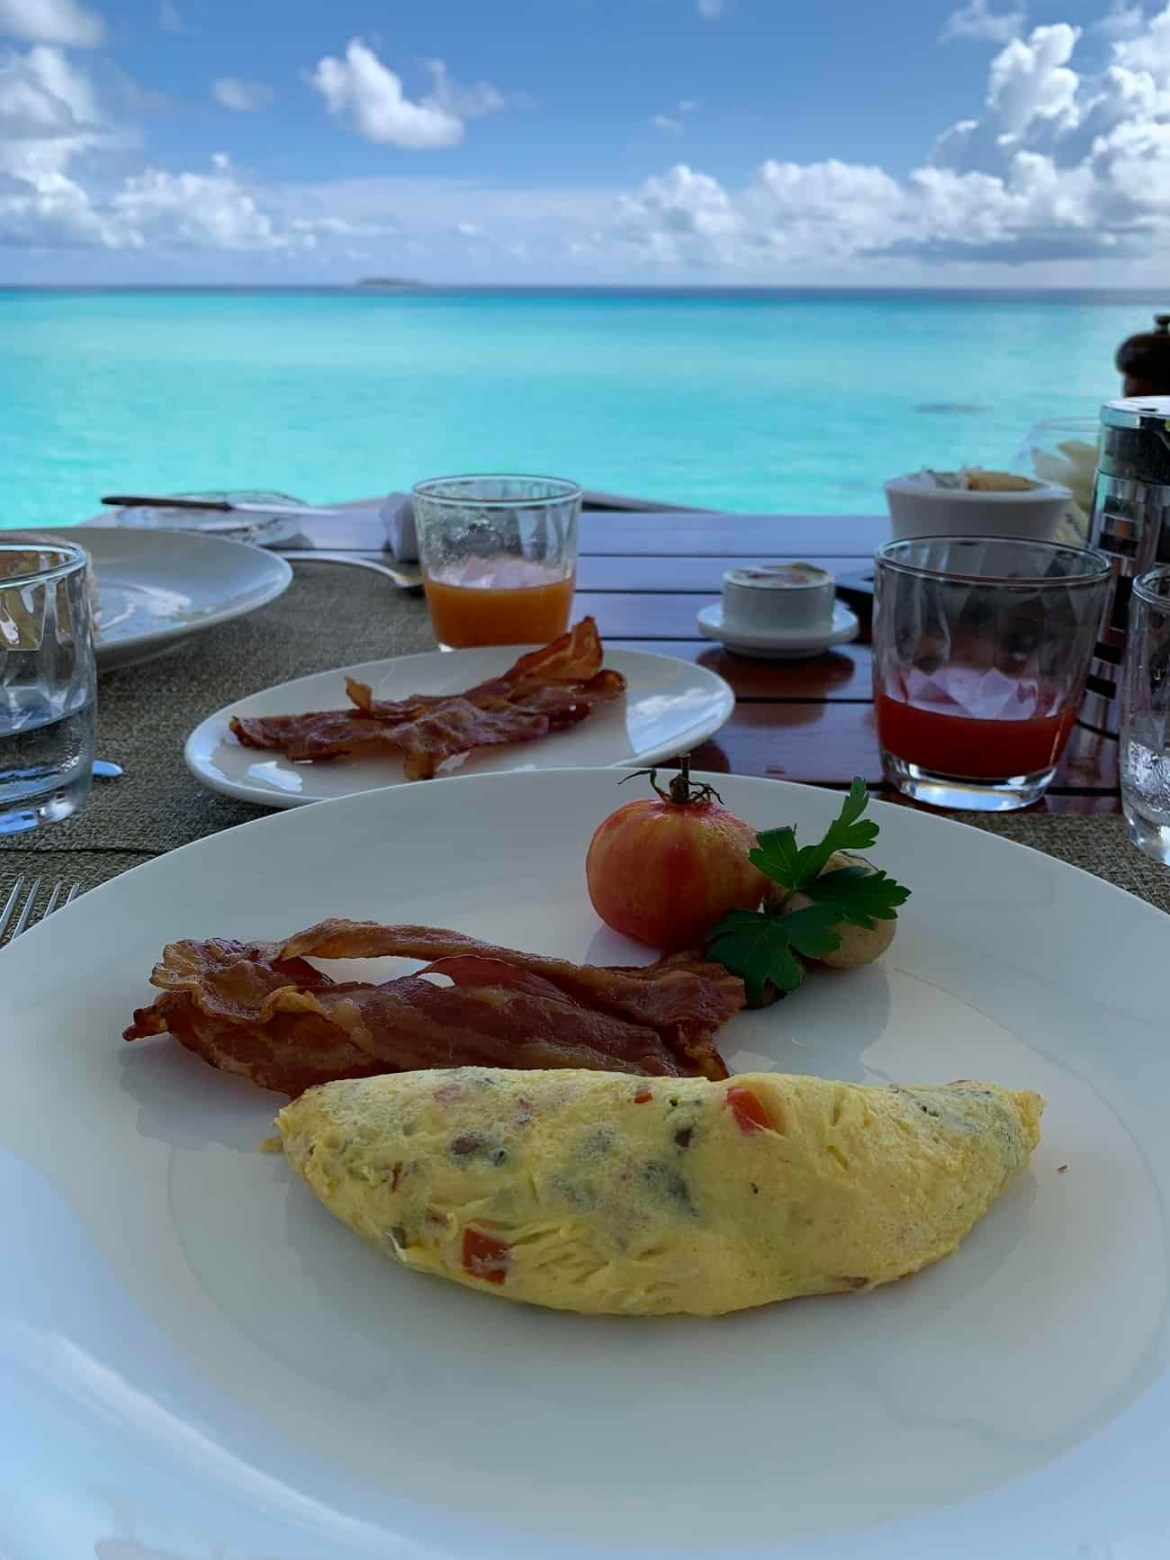 Breakfast at Reethi Rah